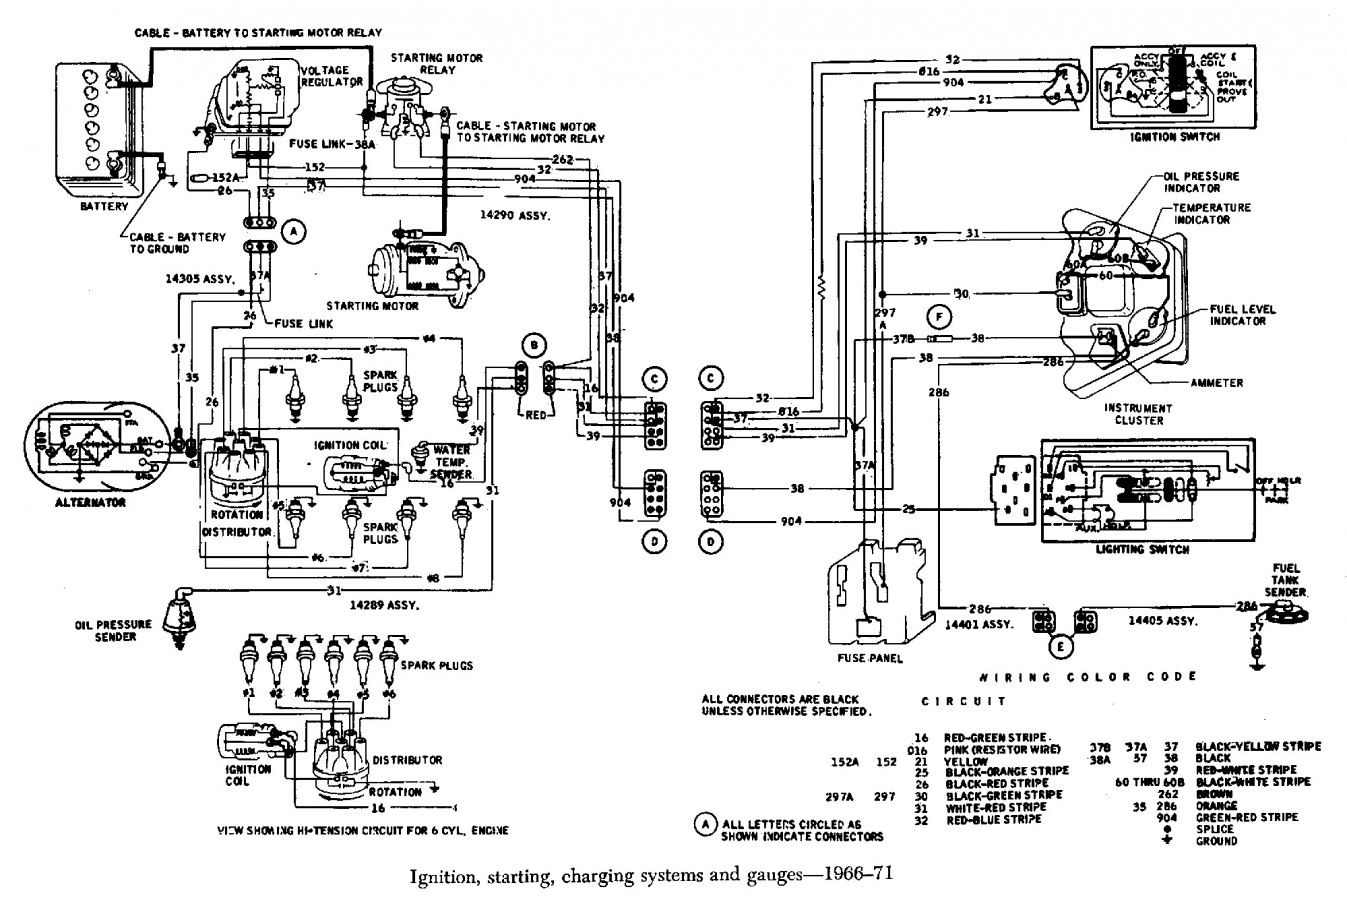 hight resolution of new chevy 350 engine wiring diagram 400 sbc library ignition wiring diagram chevy 350